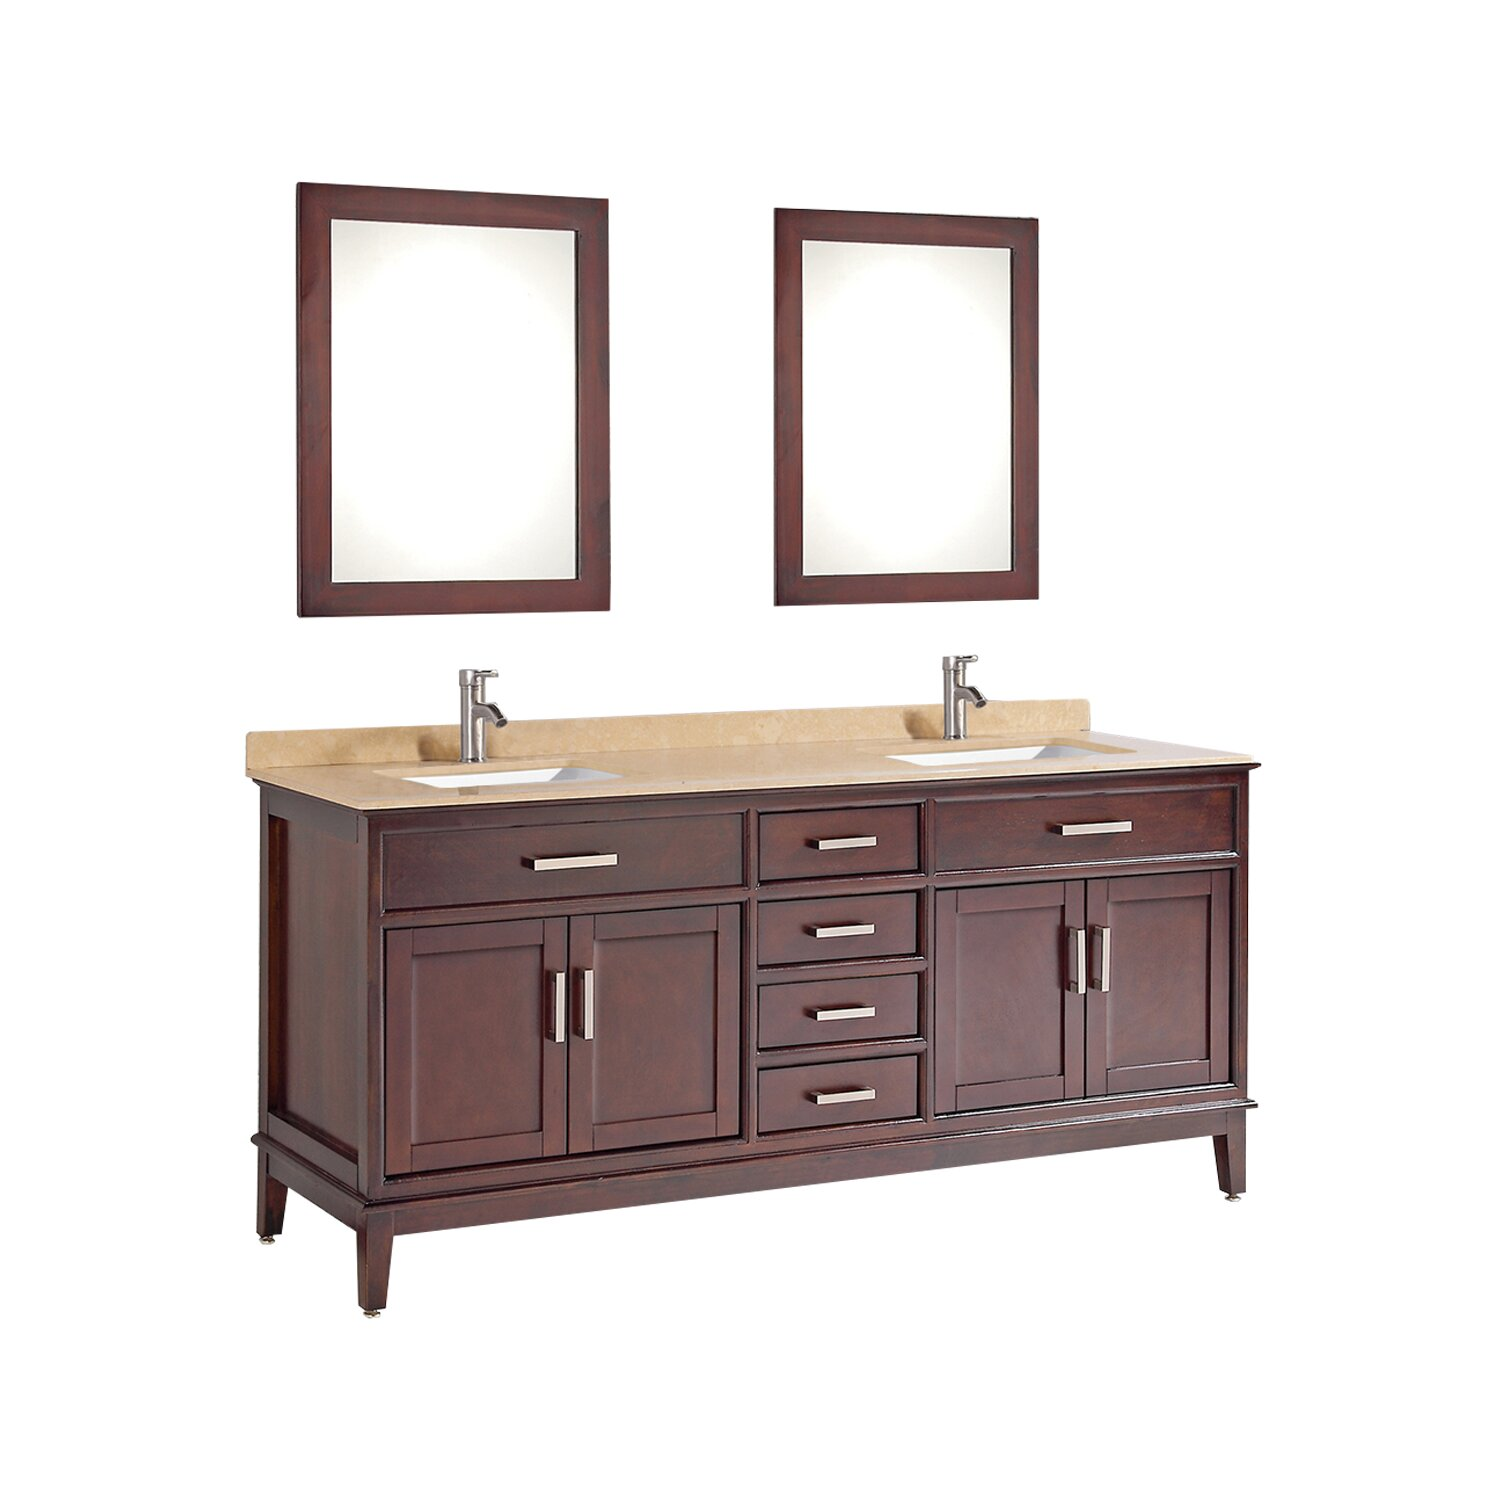 Mtdvanities sierra 59 8 double bathroom vanity set with for Mirror vanity